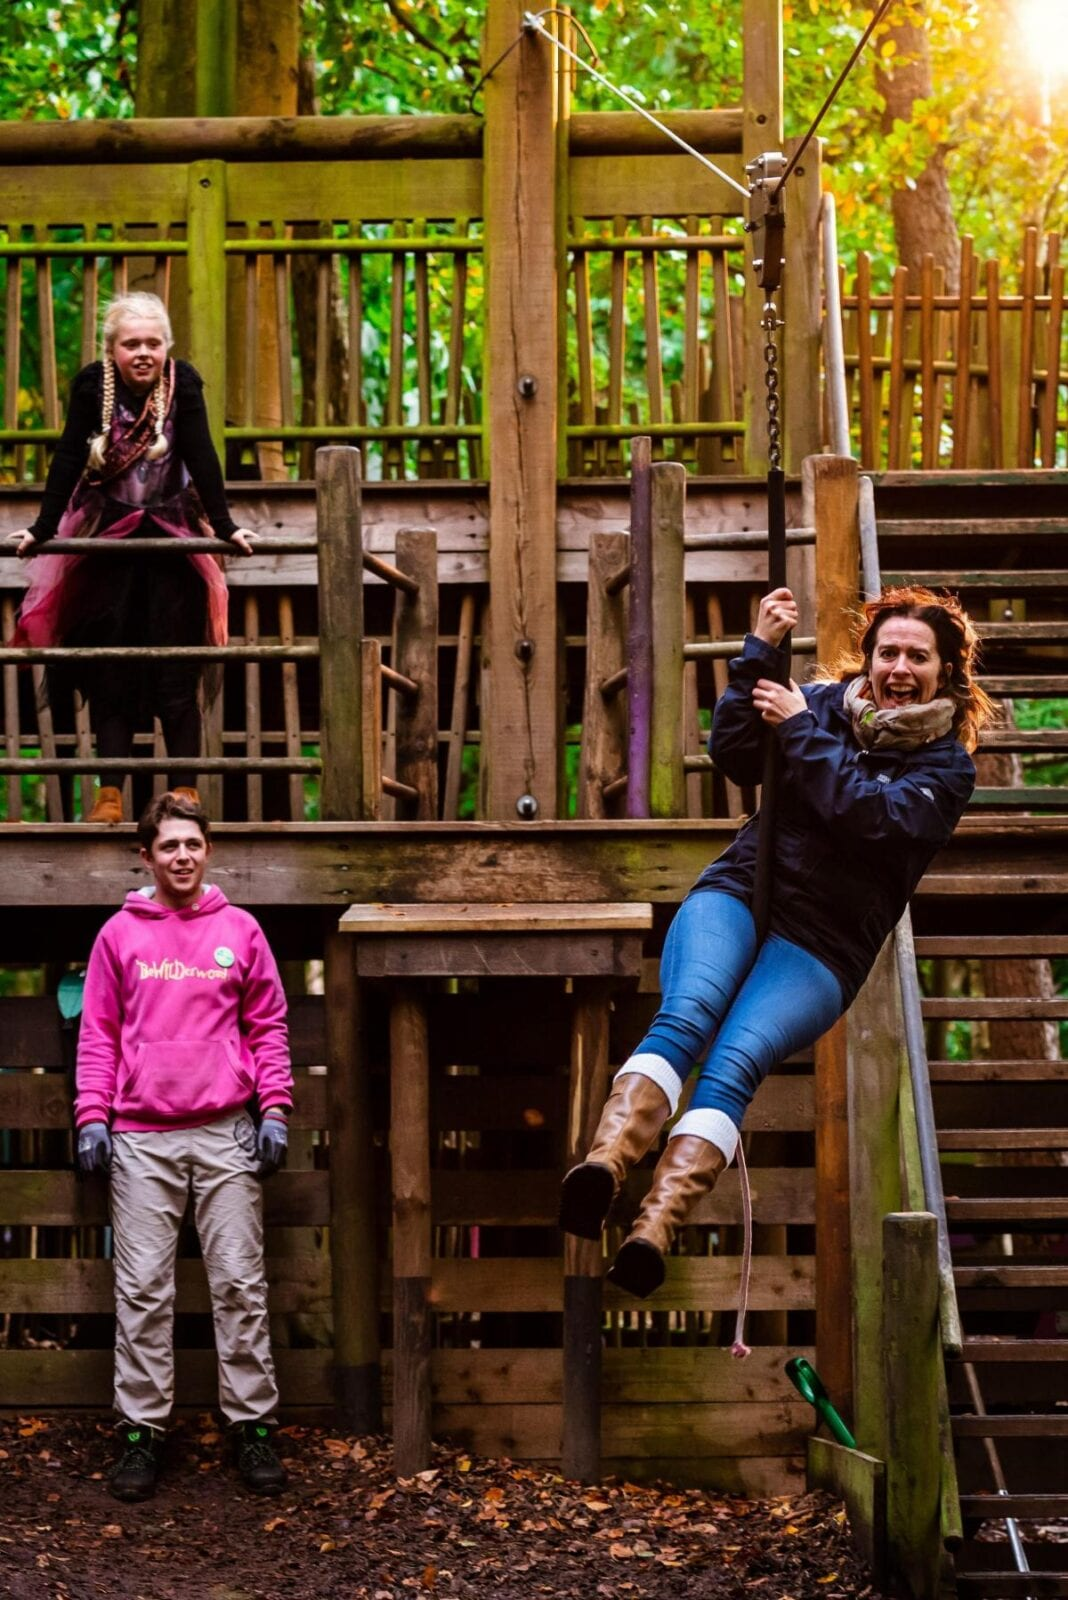 A unique woodland adventure park is opening next to a castle in Cheshire in April, The Manc